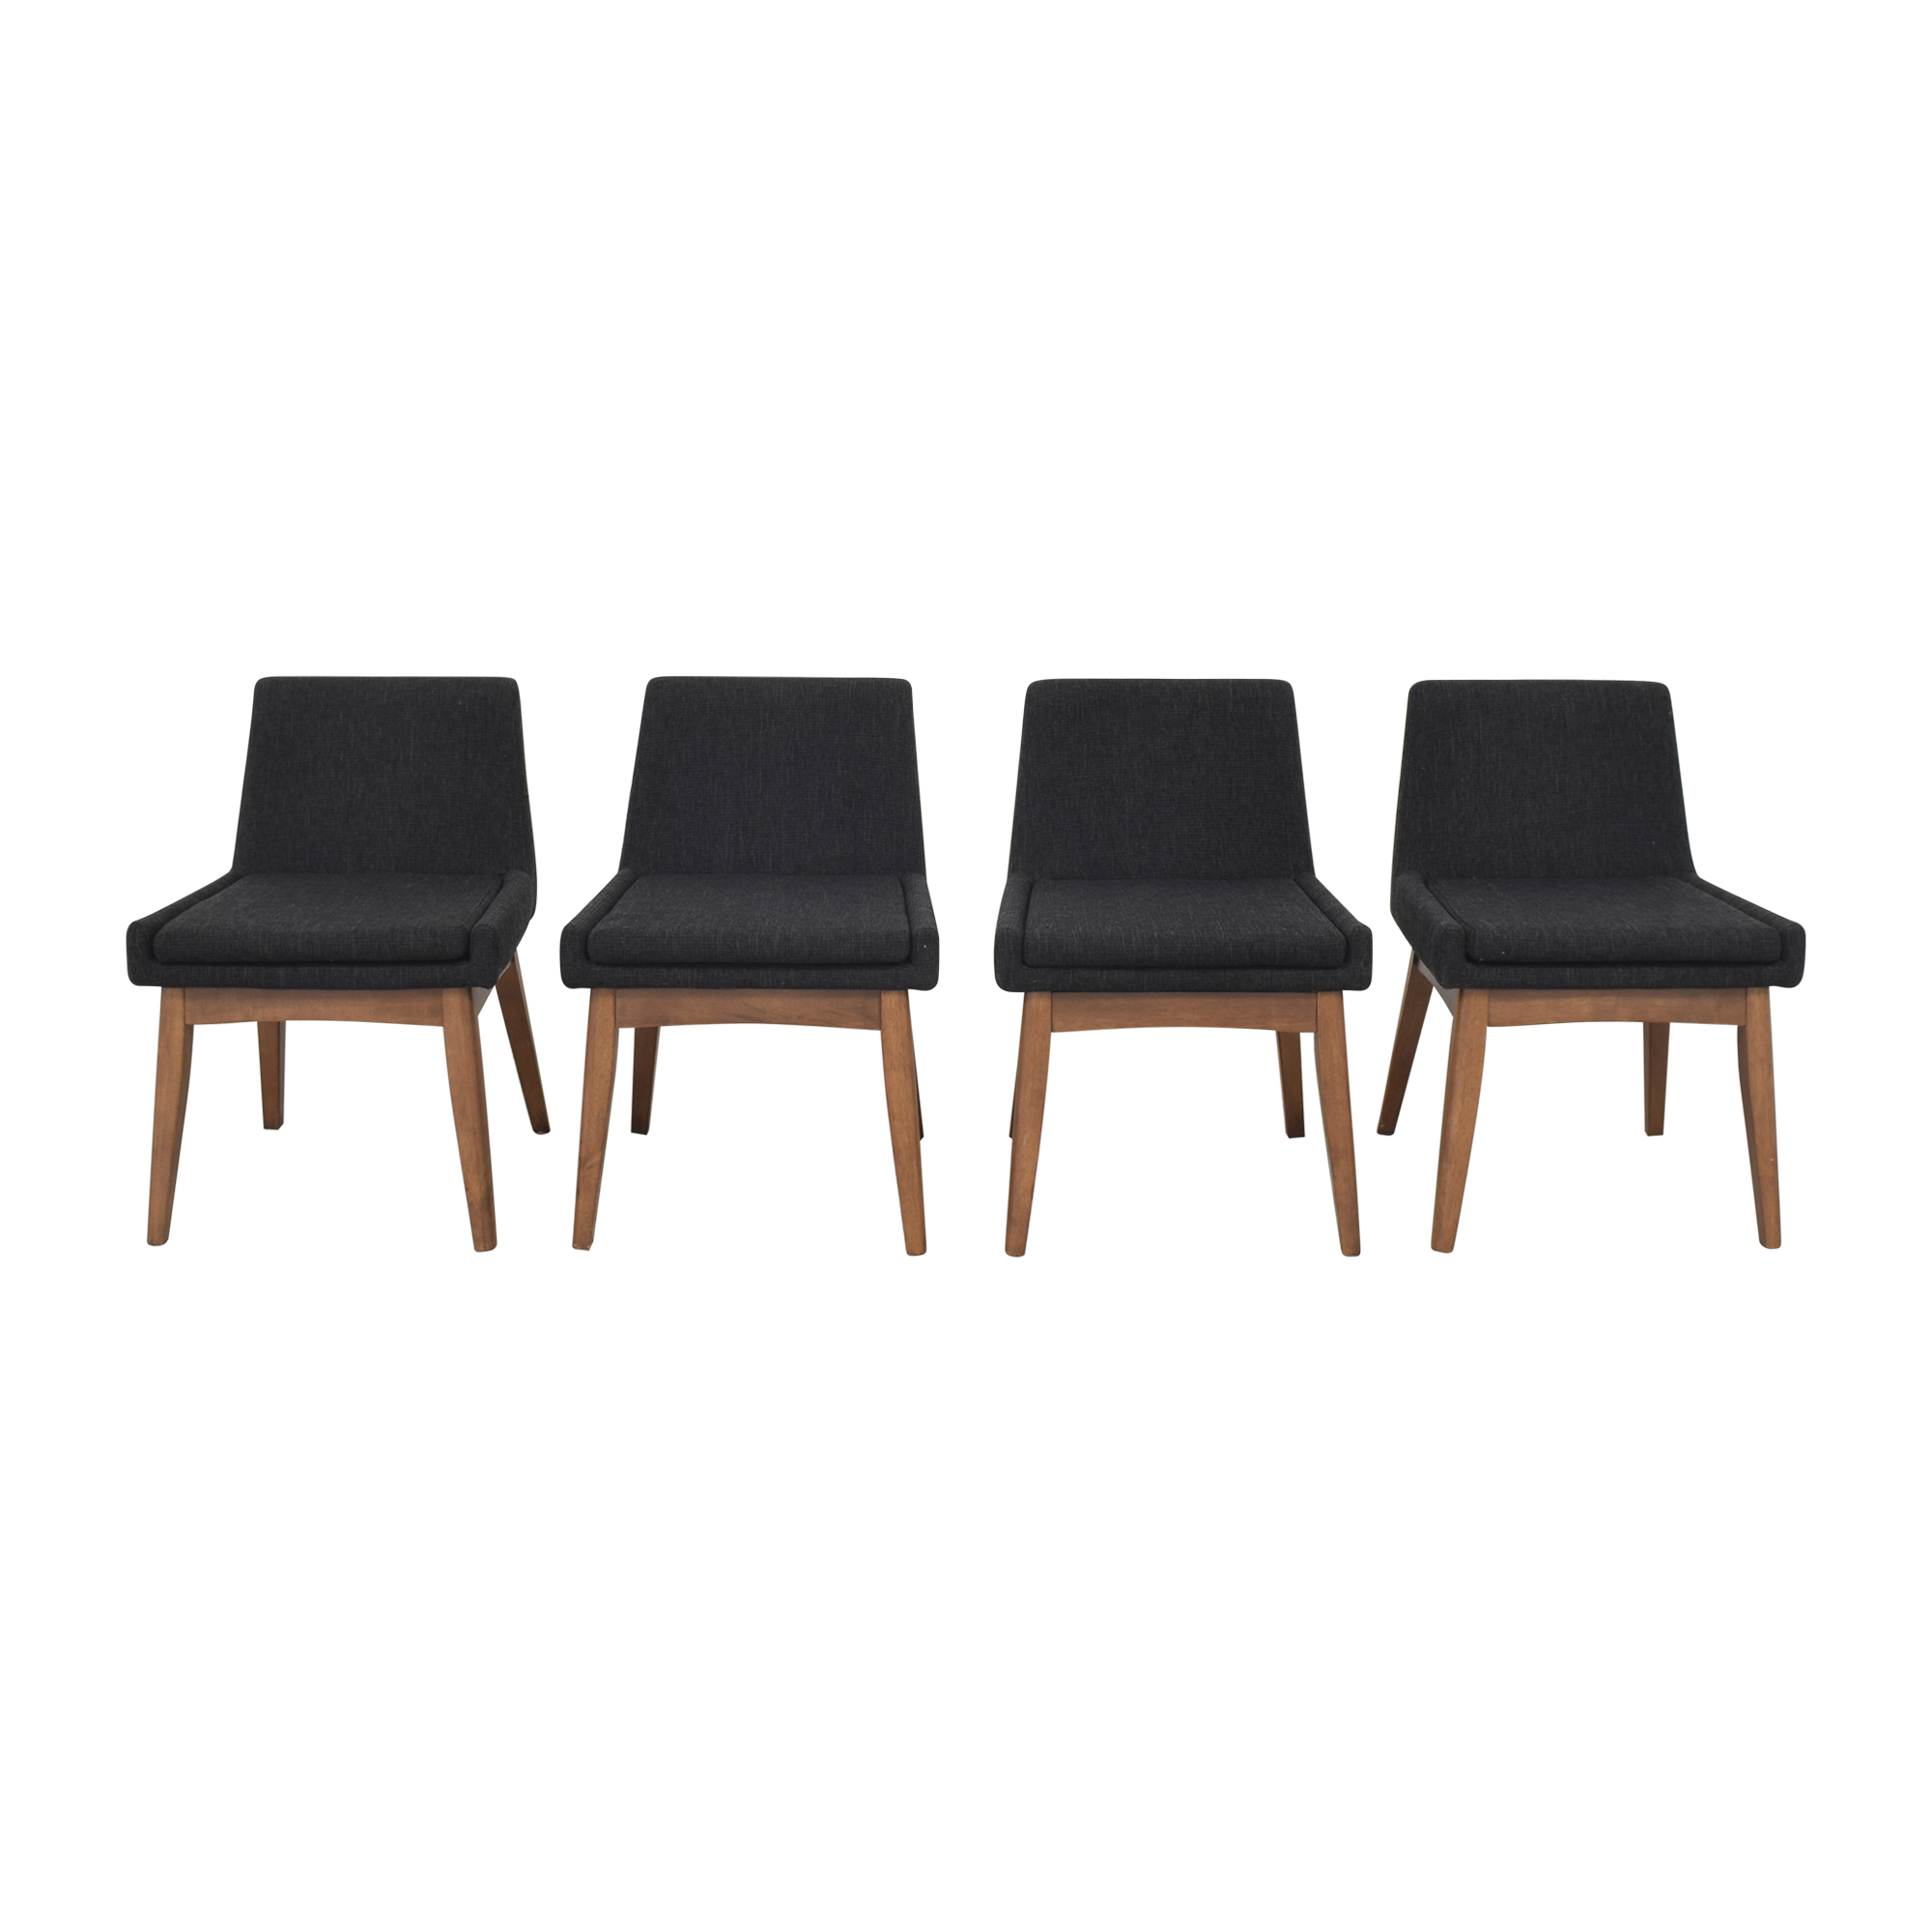 buy AllModern Hayes Upholstered Dining Chairs AllModern Dining Chairs